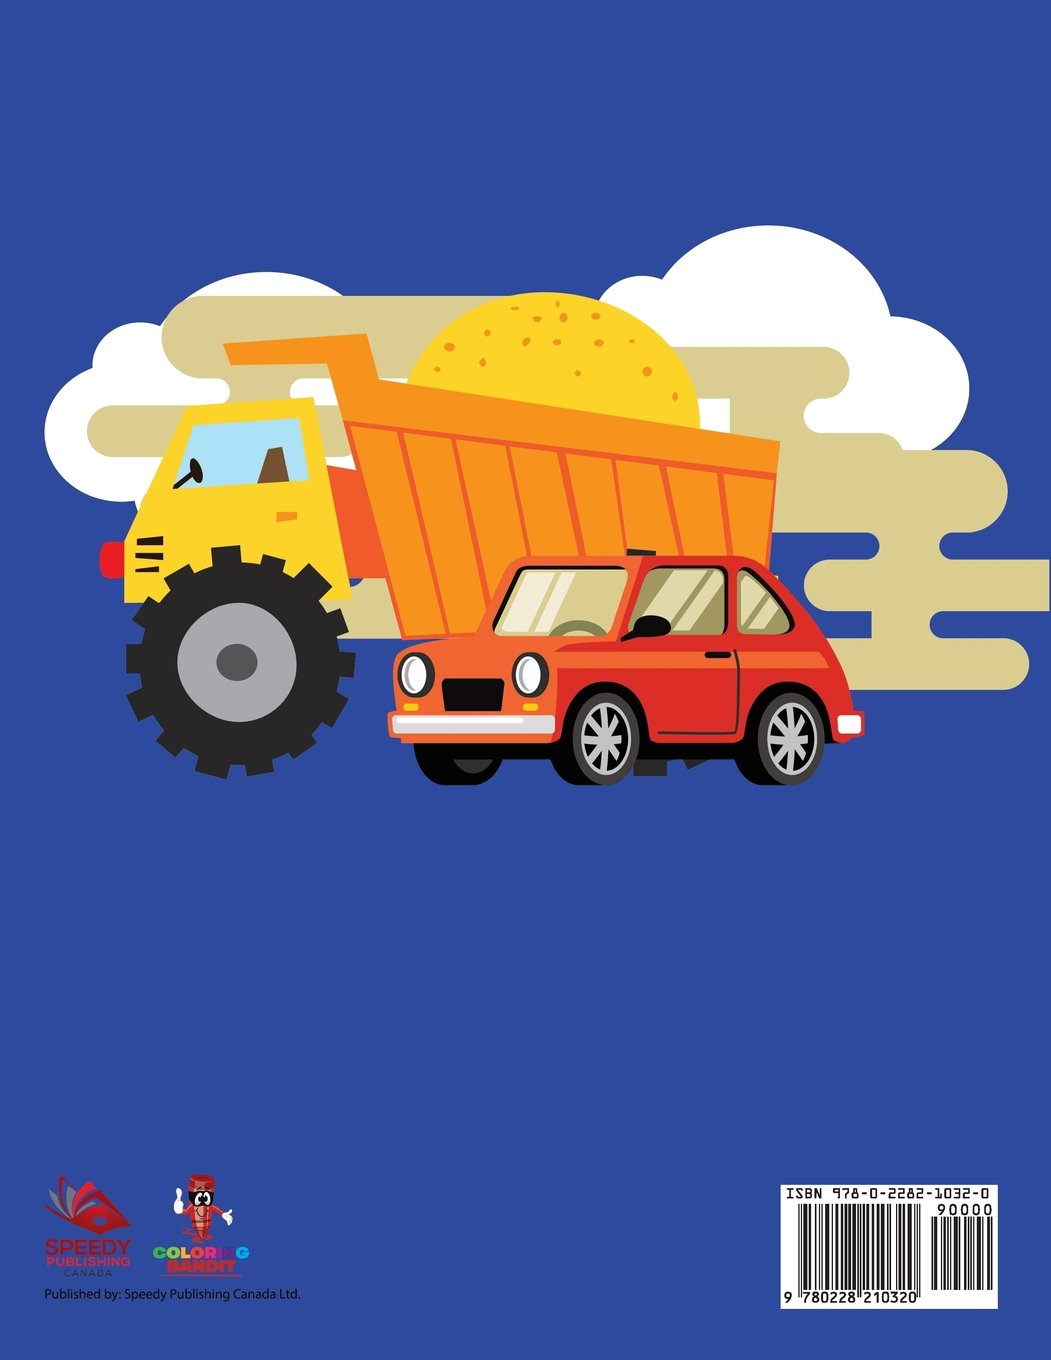 Buy Pkw Und Lkw: Jungs Malbuch Book Online at Low Prices in India ...